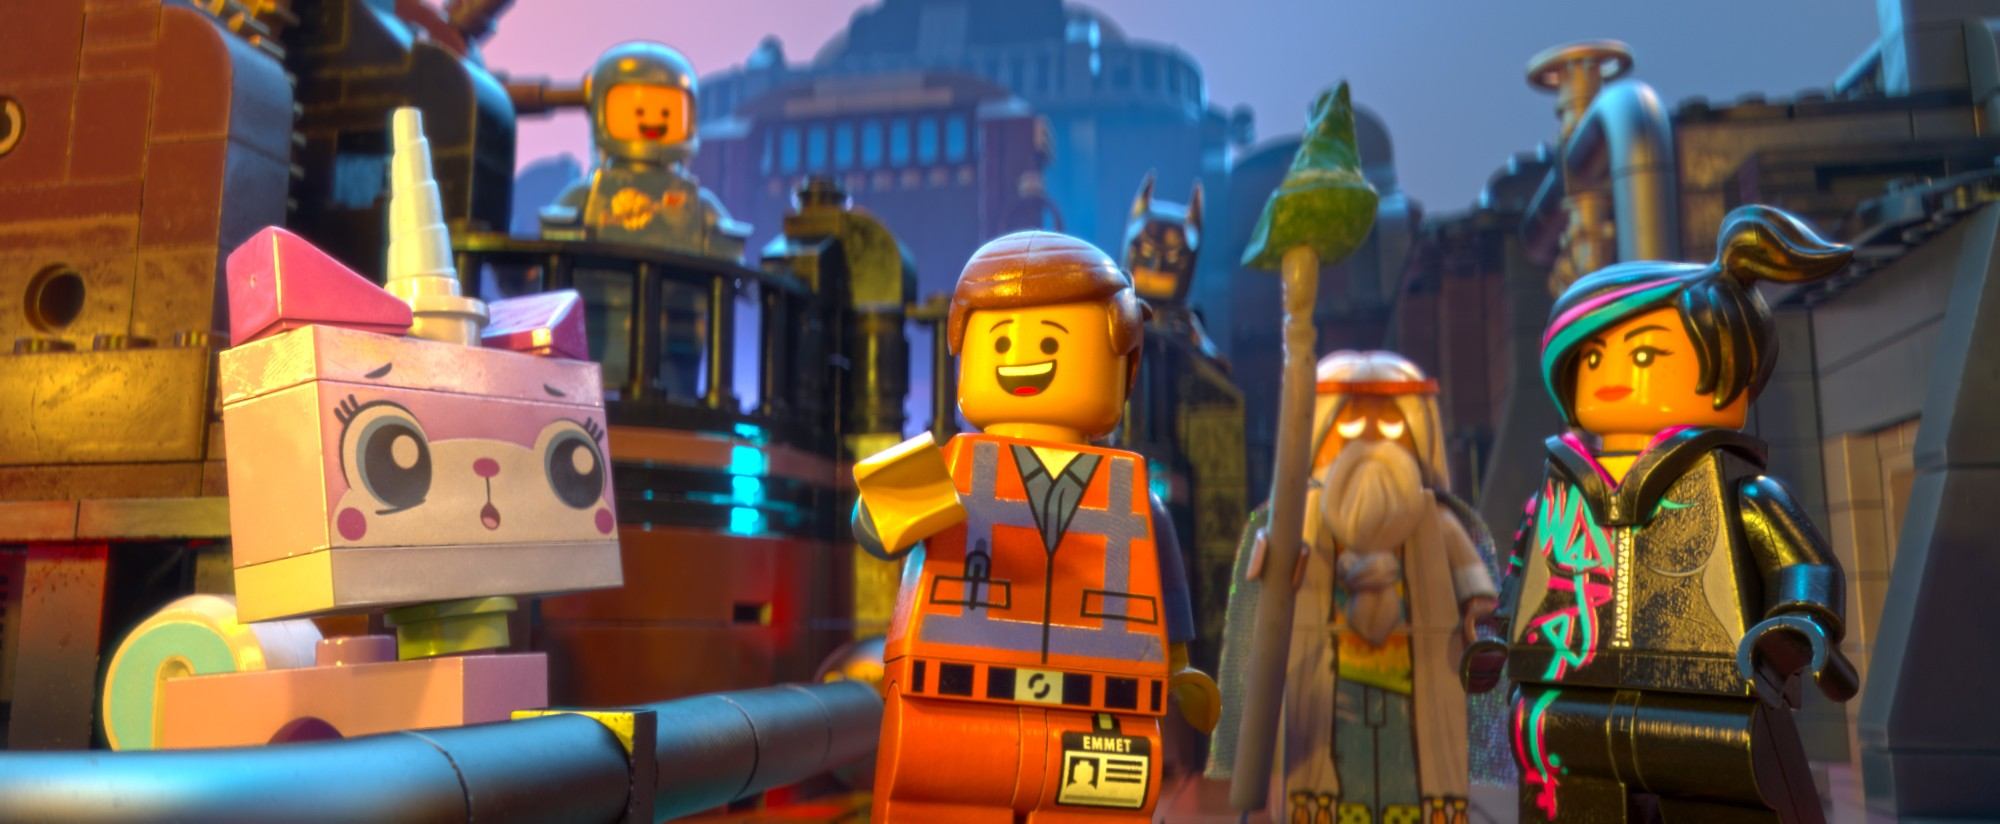 Nine new clips from The LEGO Movie